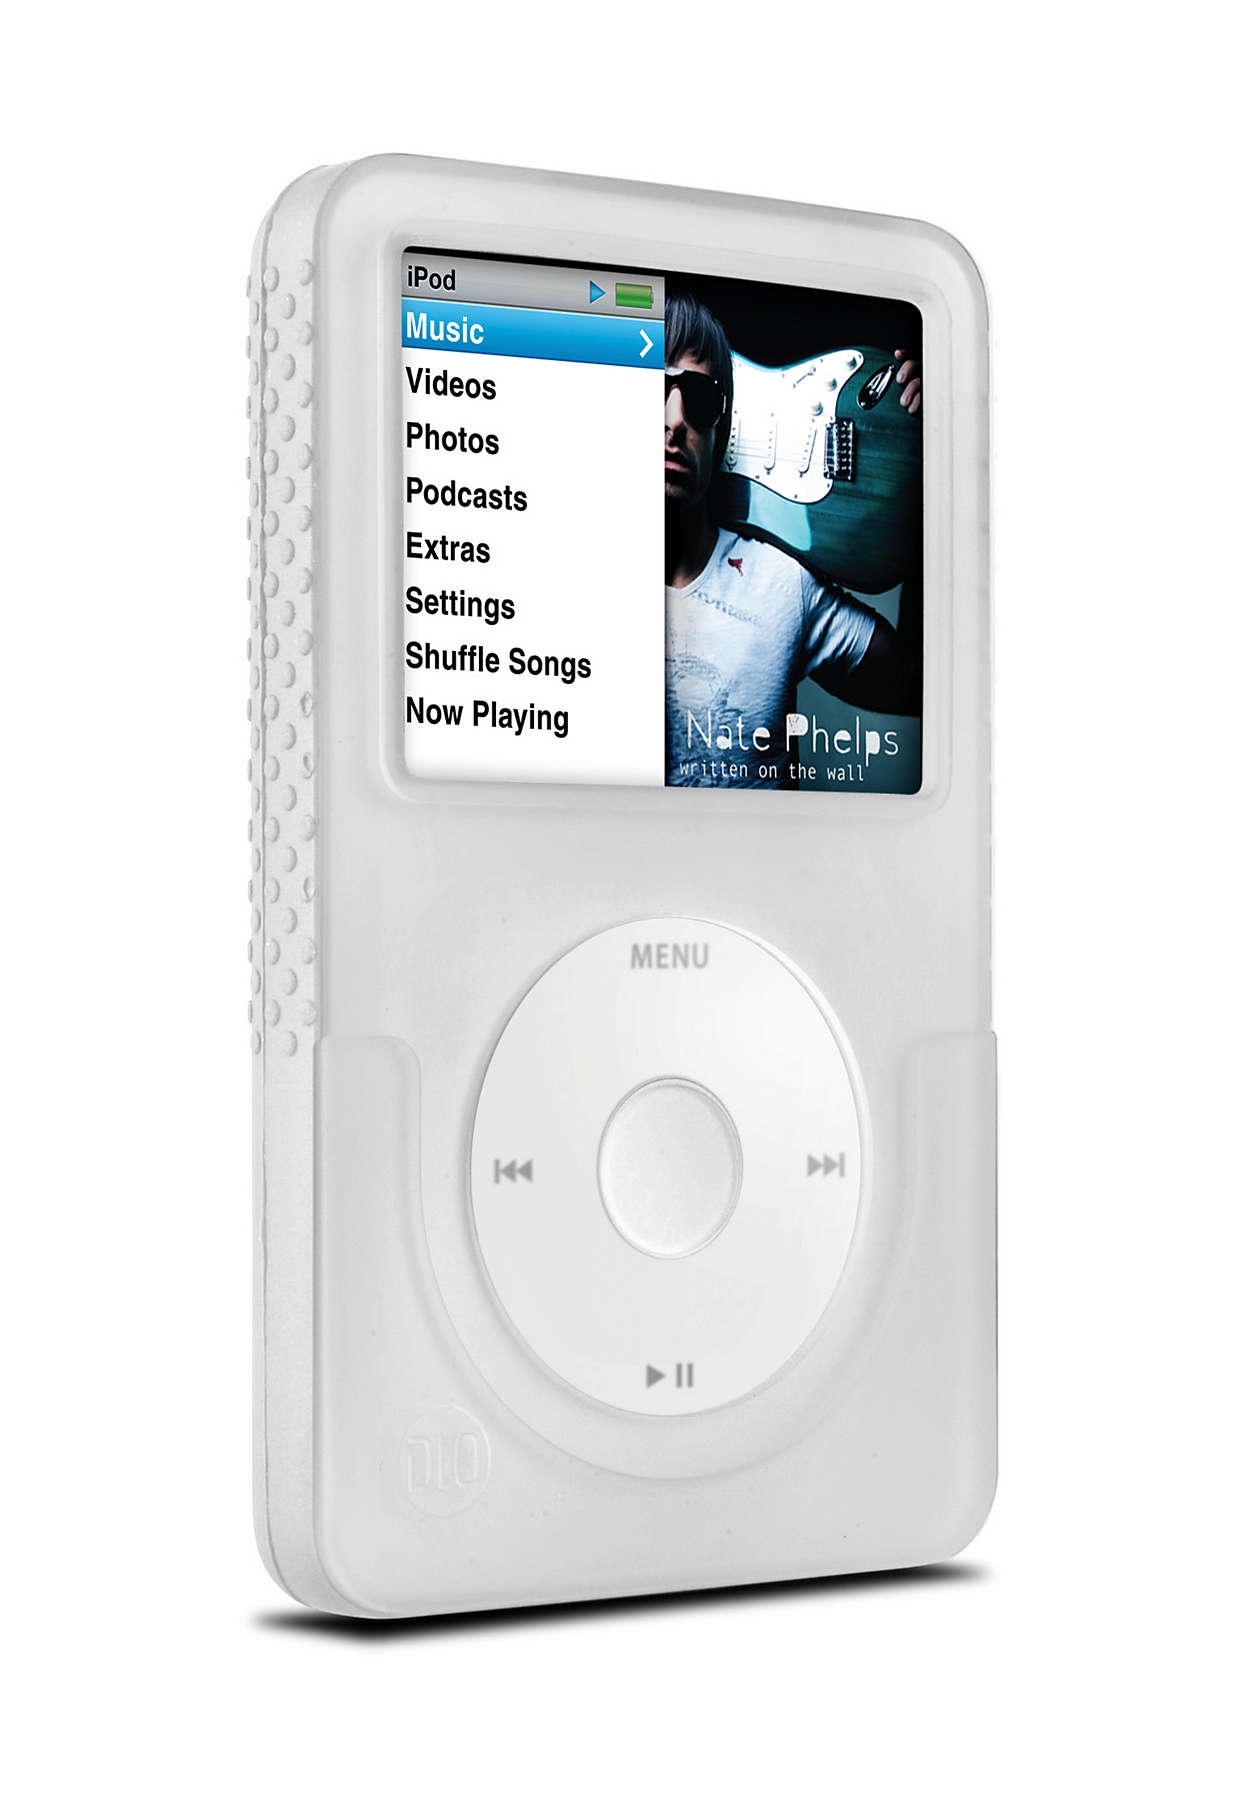 Protect your iPod in style